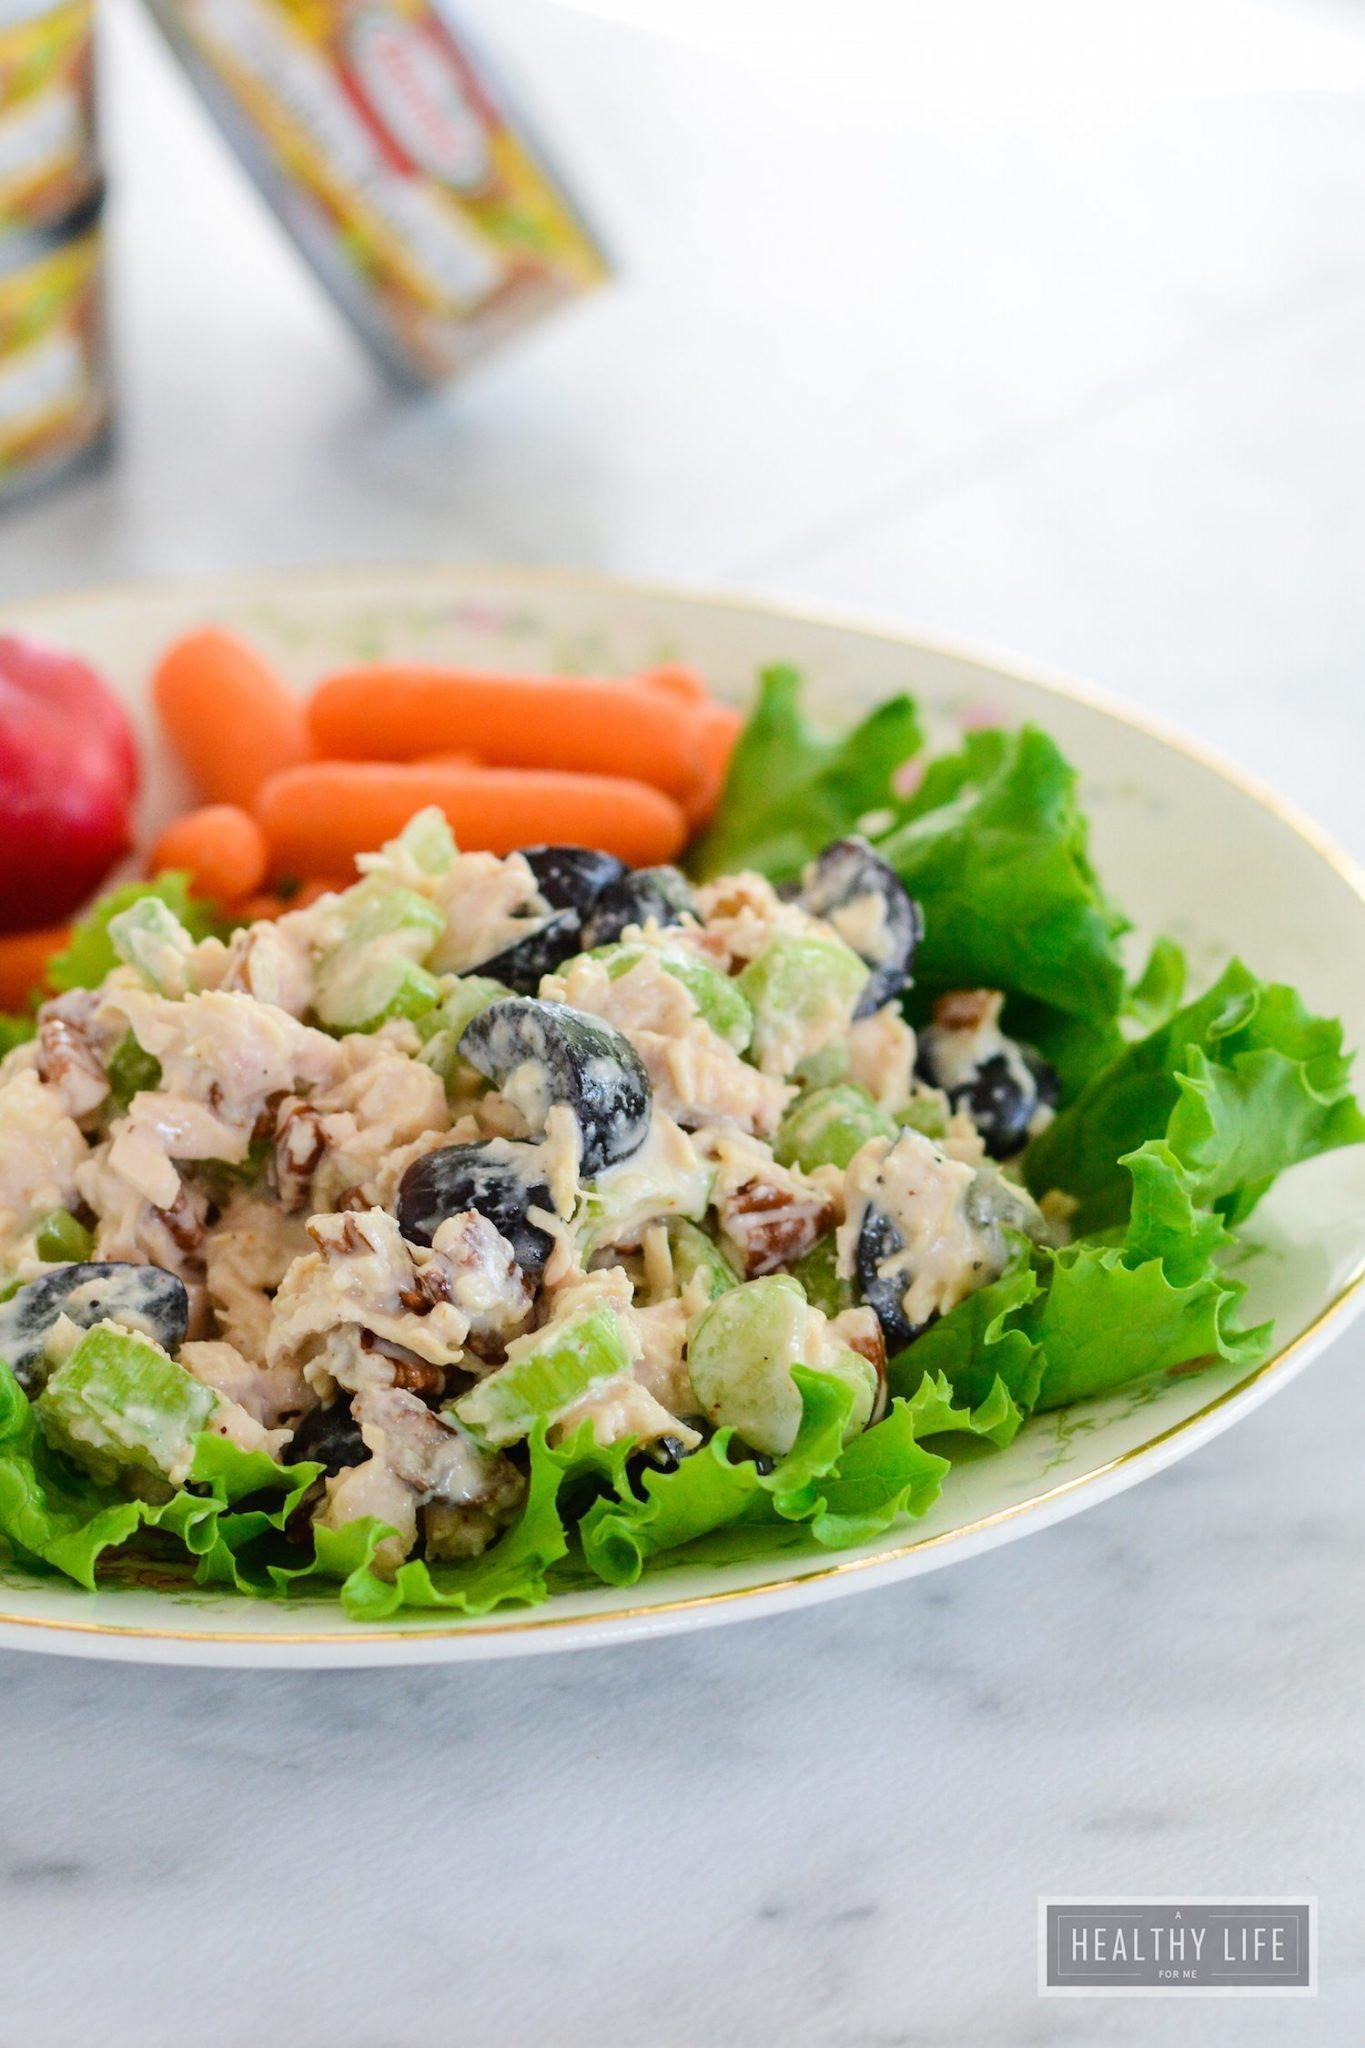 Is Chicken Salad Healthy  5 Minute Chicken Salad gluten free A Healthy Life For Me